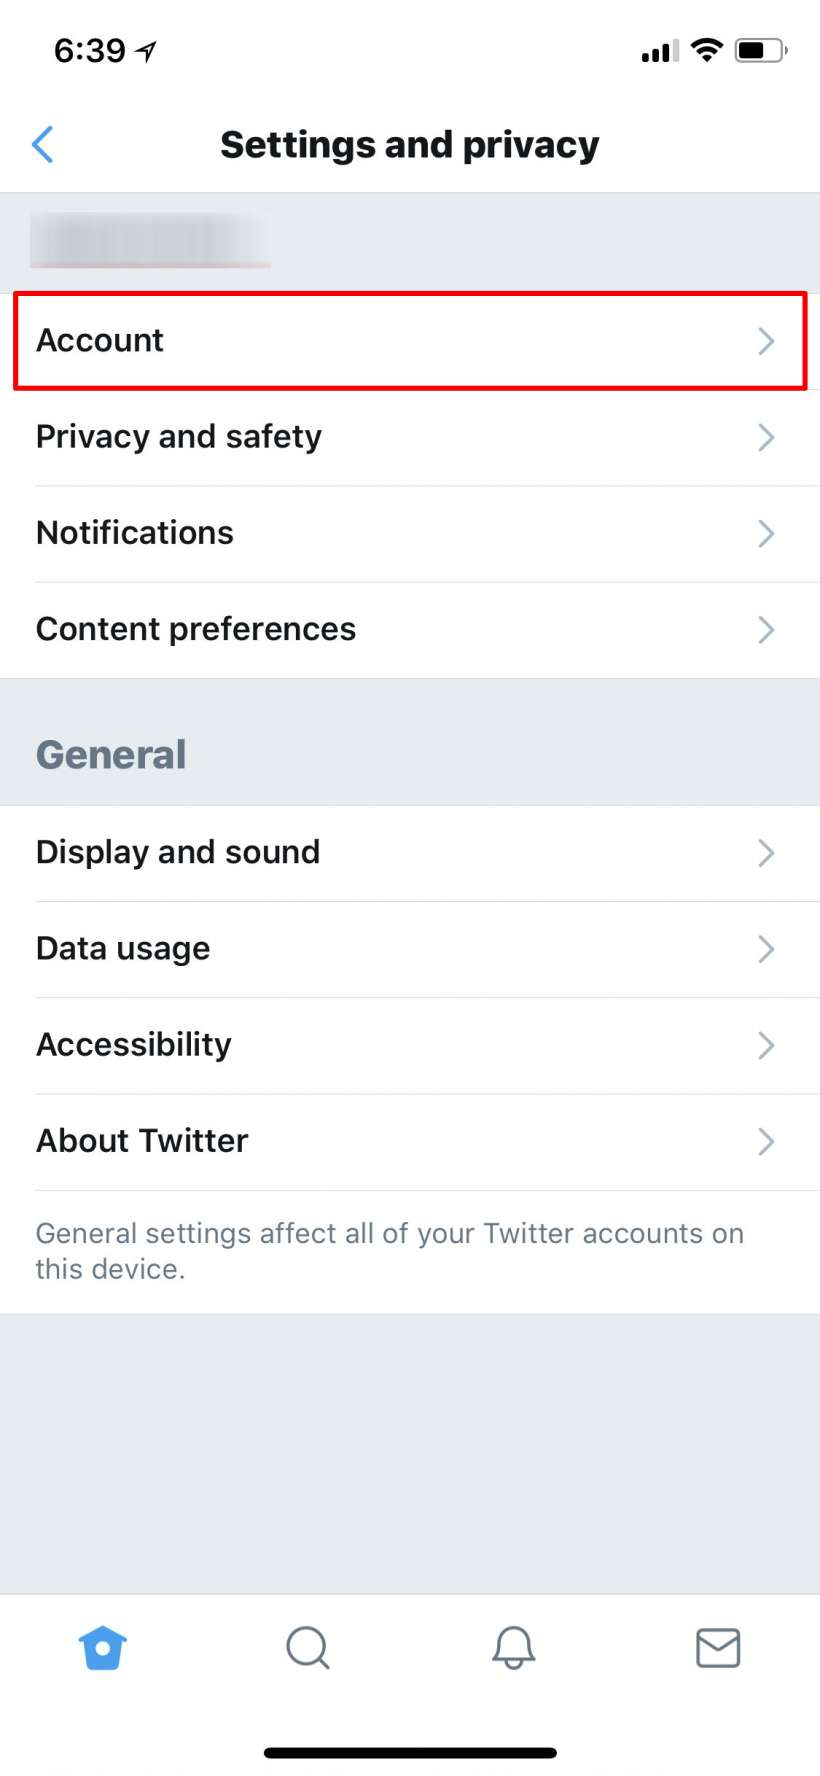 How to change your Twitter password and turn on two factor authentication 2FA on iPhone and iPad.